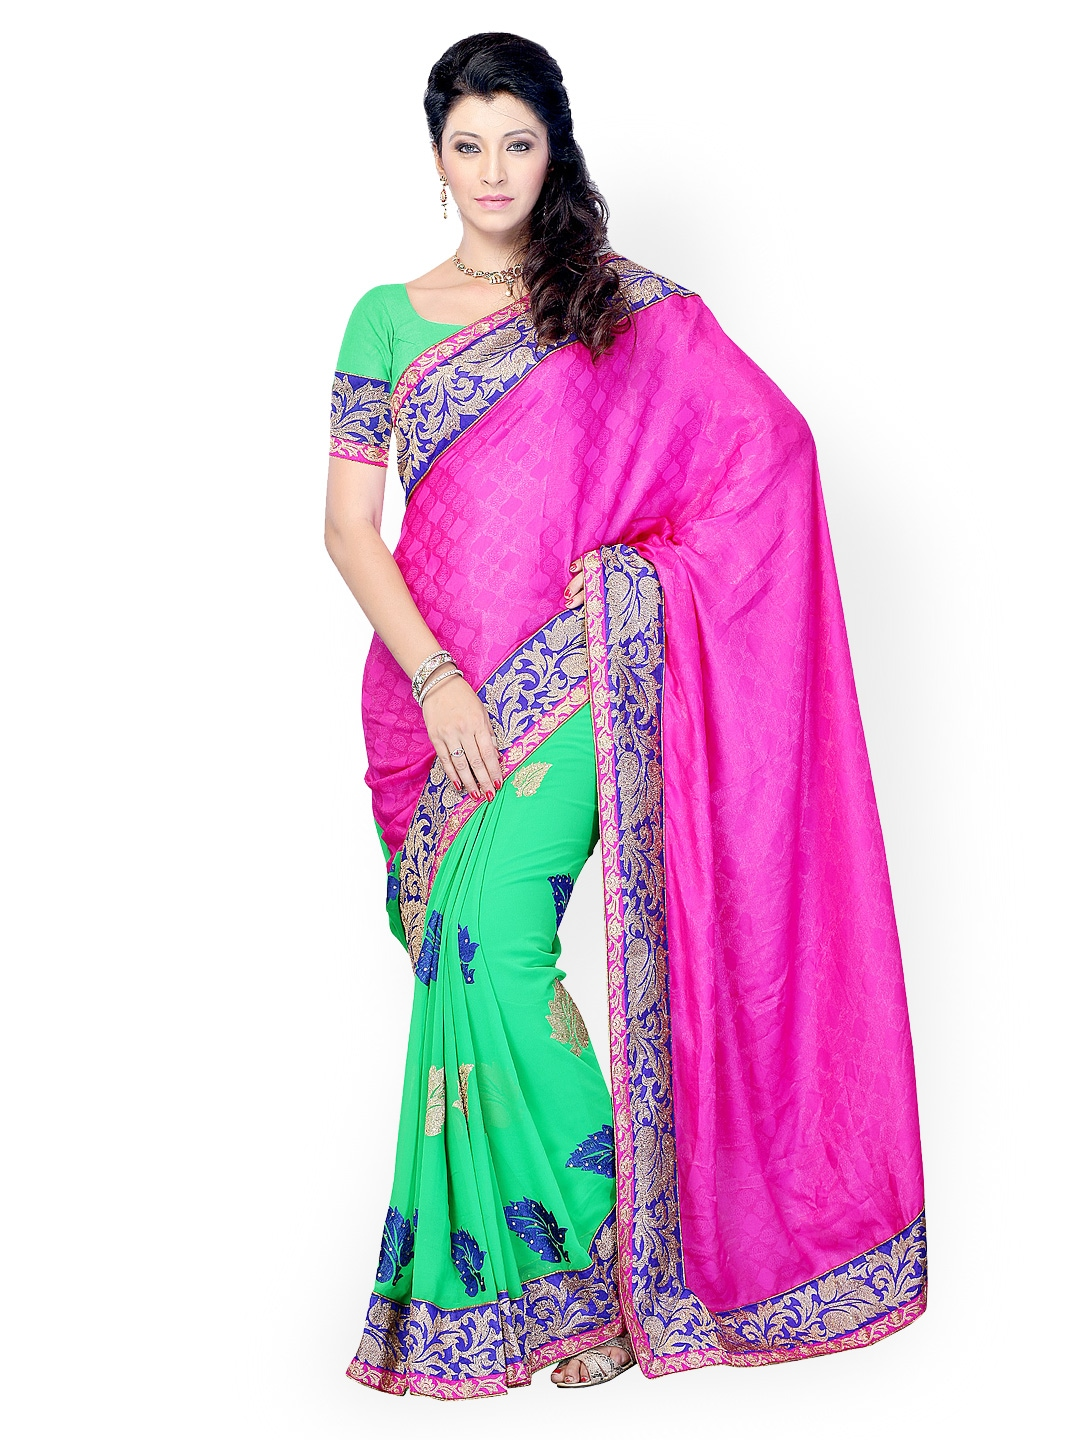 Myntra diva fashion pink green jacquard embroidered saree 396945 buy myntra viva n diva - Diva style fashion ...